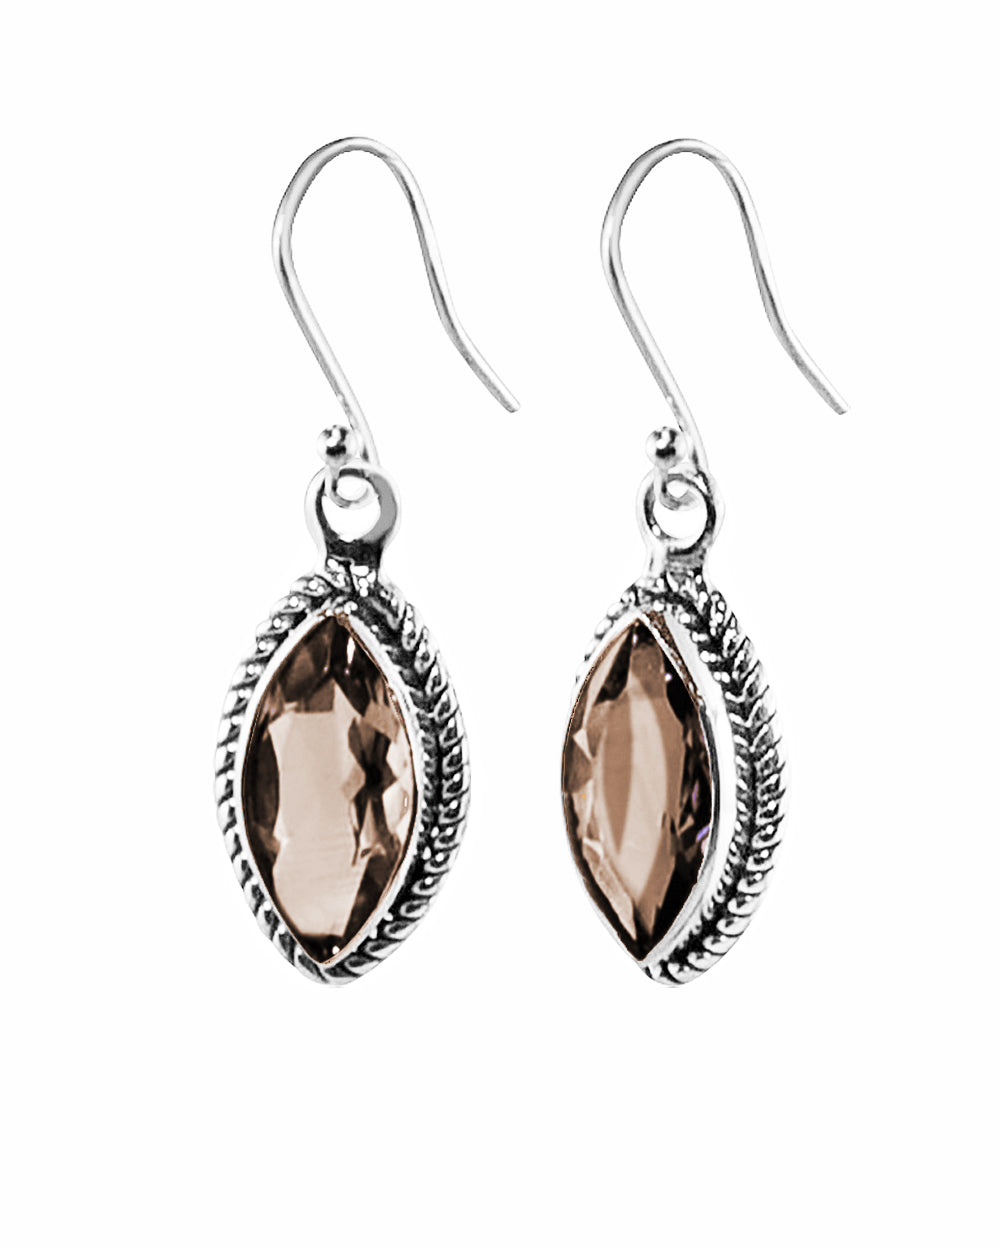 Ananda Sterling Silver Earrings - Smoky Quartz